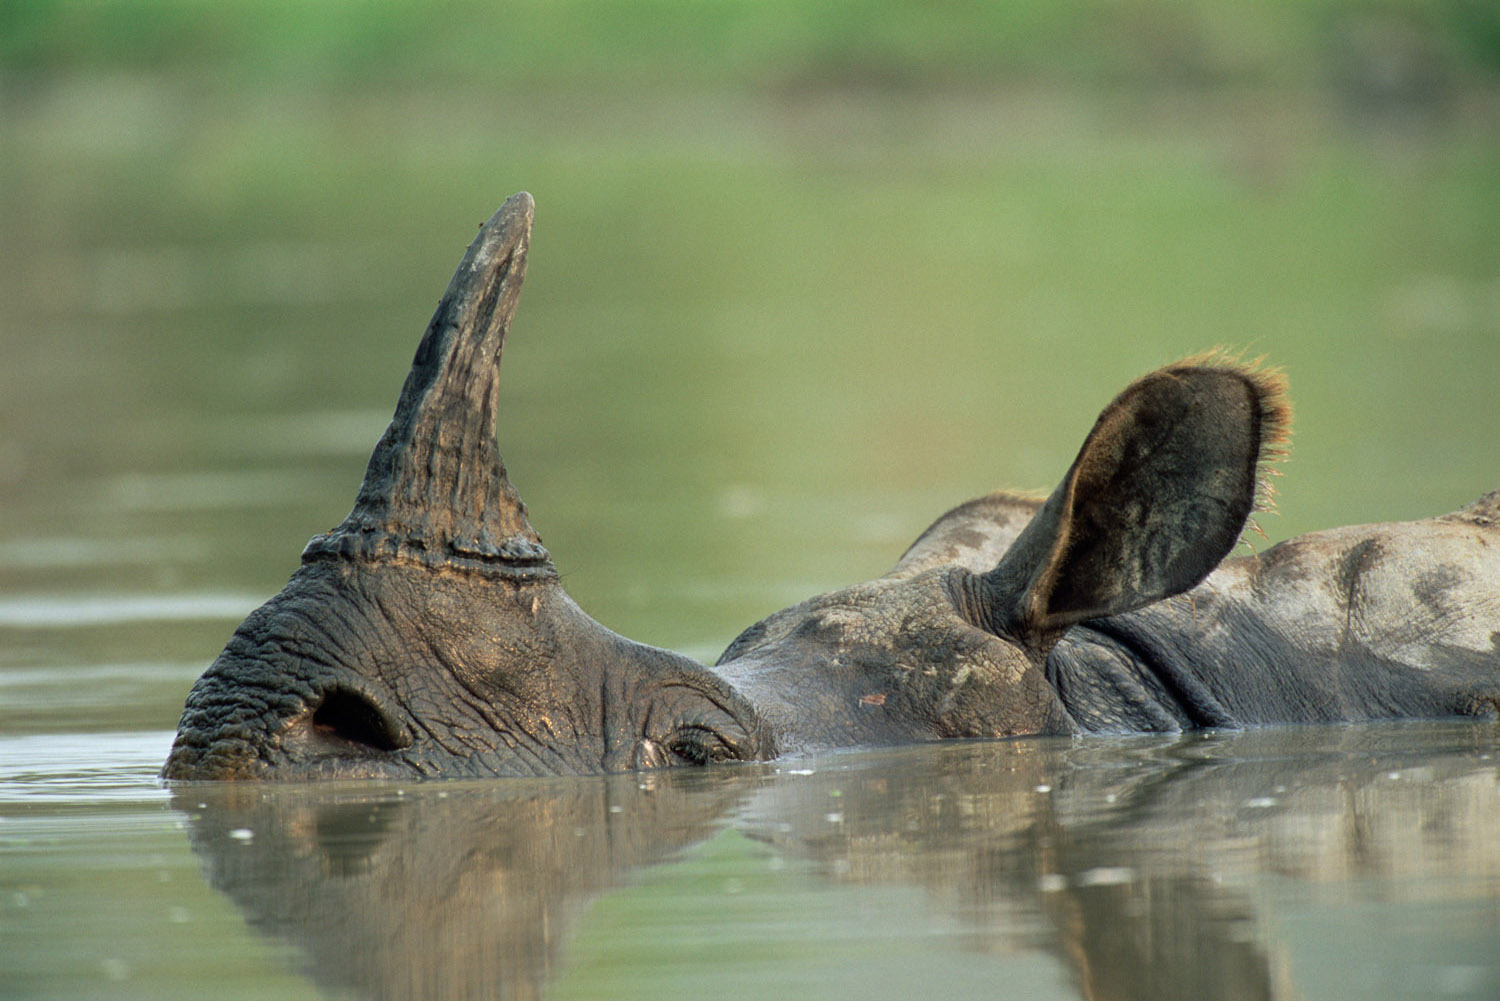 Indian rhinoceros wallowing, Kaziranga National Park, Assam, India